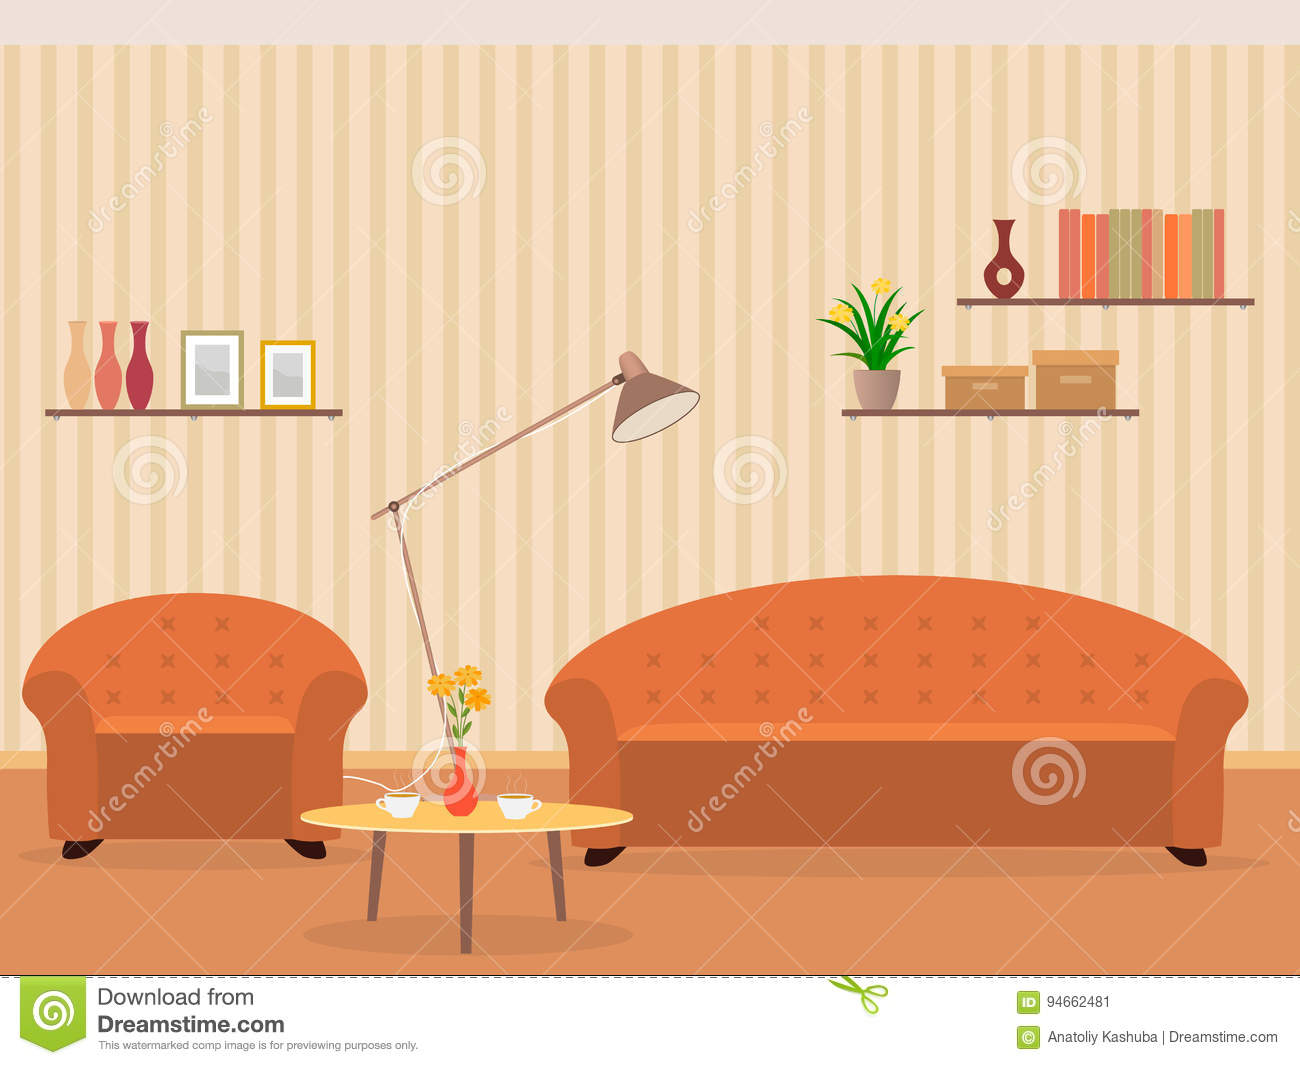 Interior of living room design in flat style with furniture, armchair, sofa, lamp, bookshelf and flowers on a table.